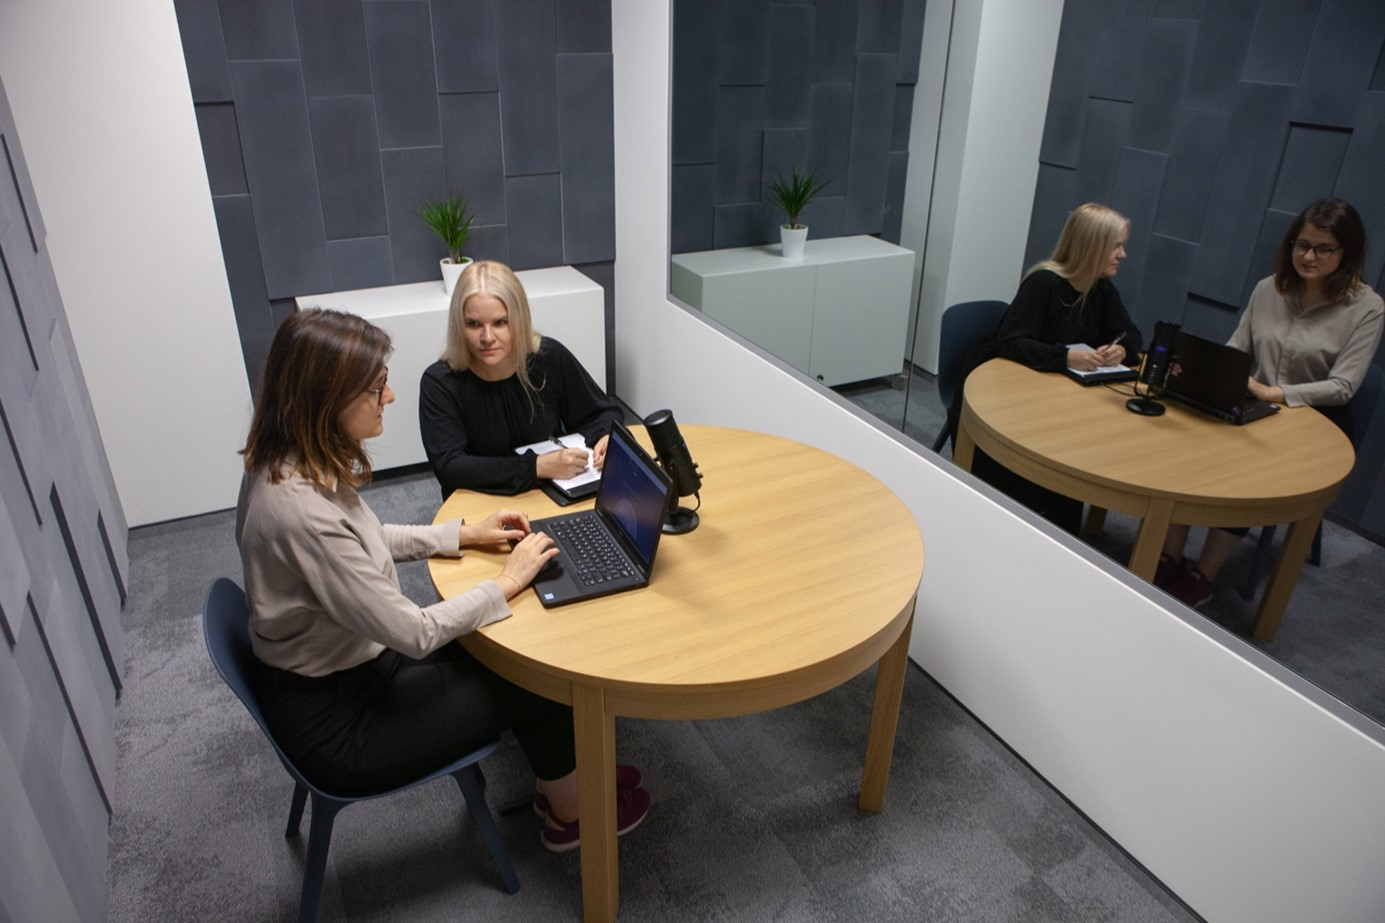 Two women during UX research in laboratory